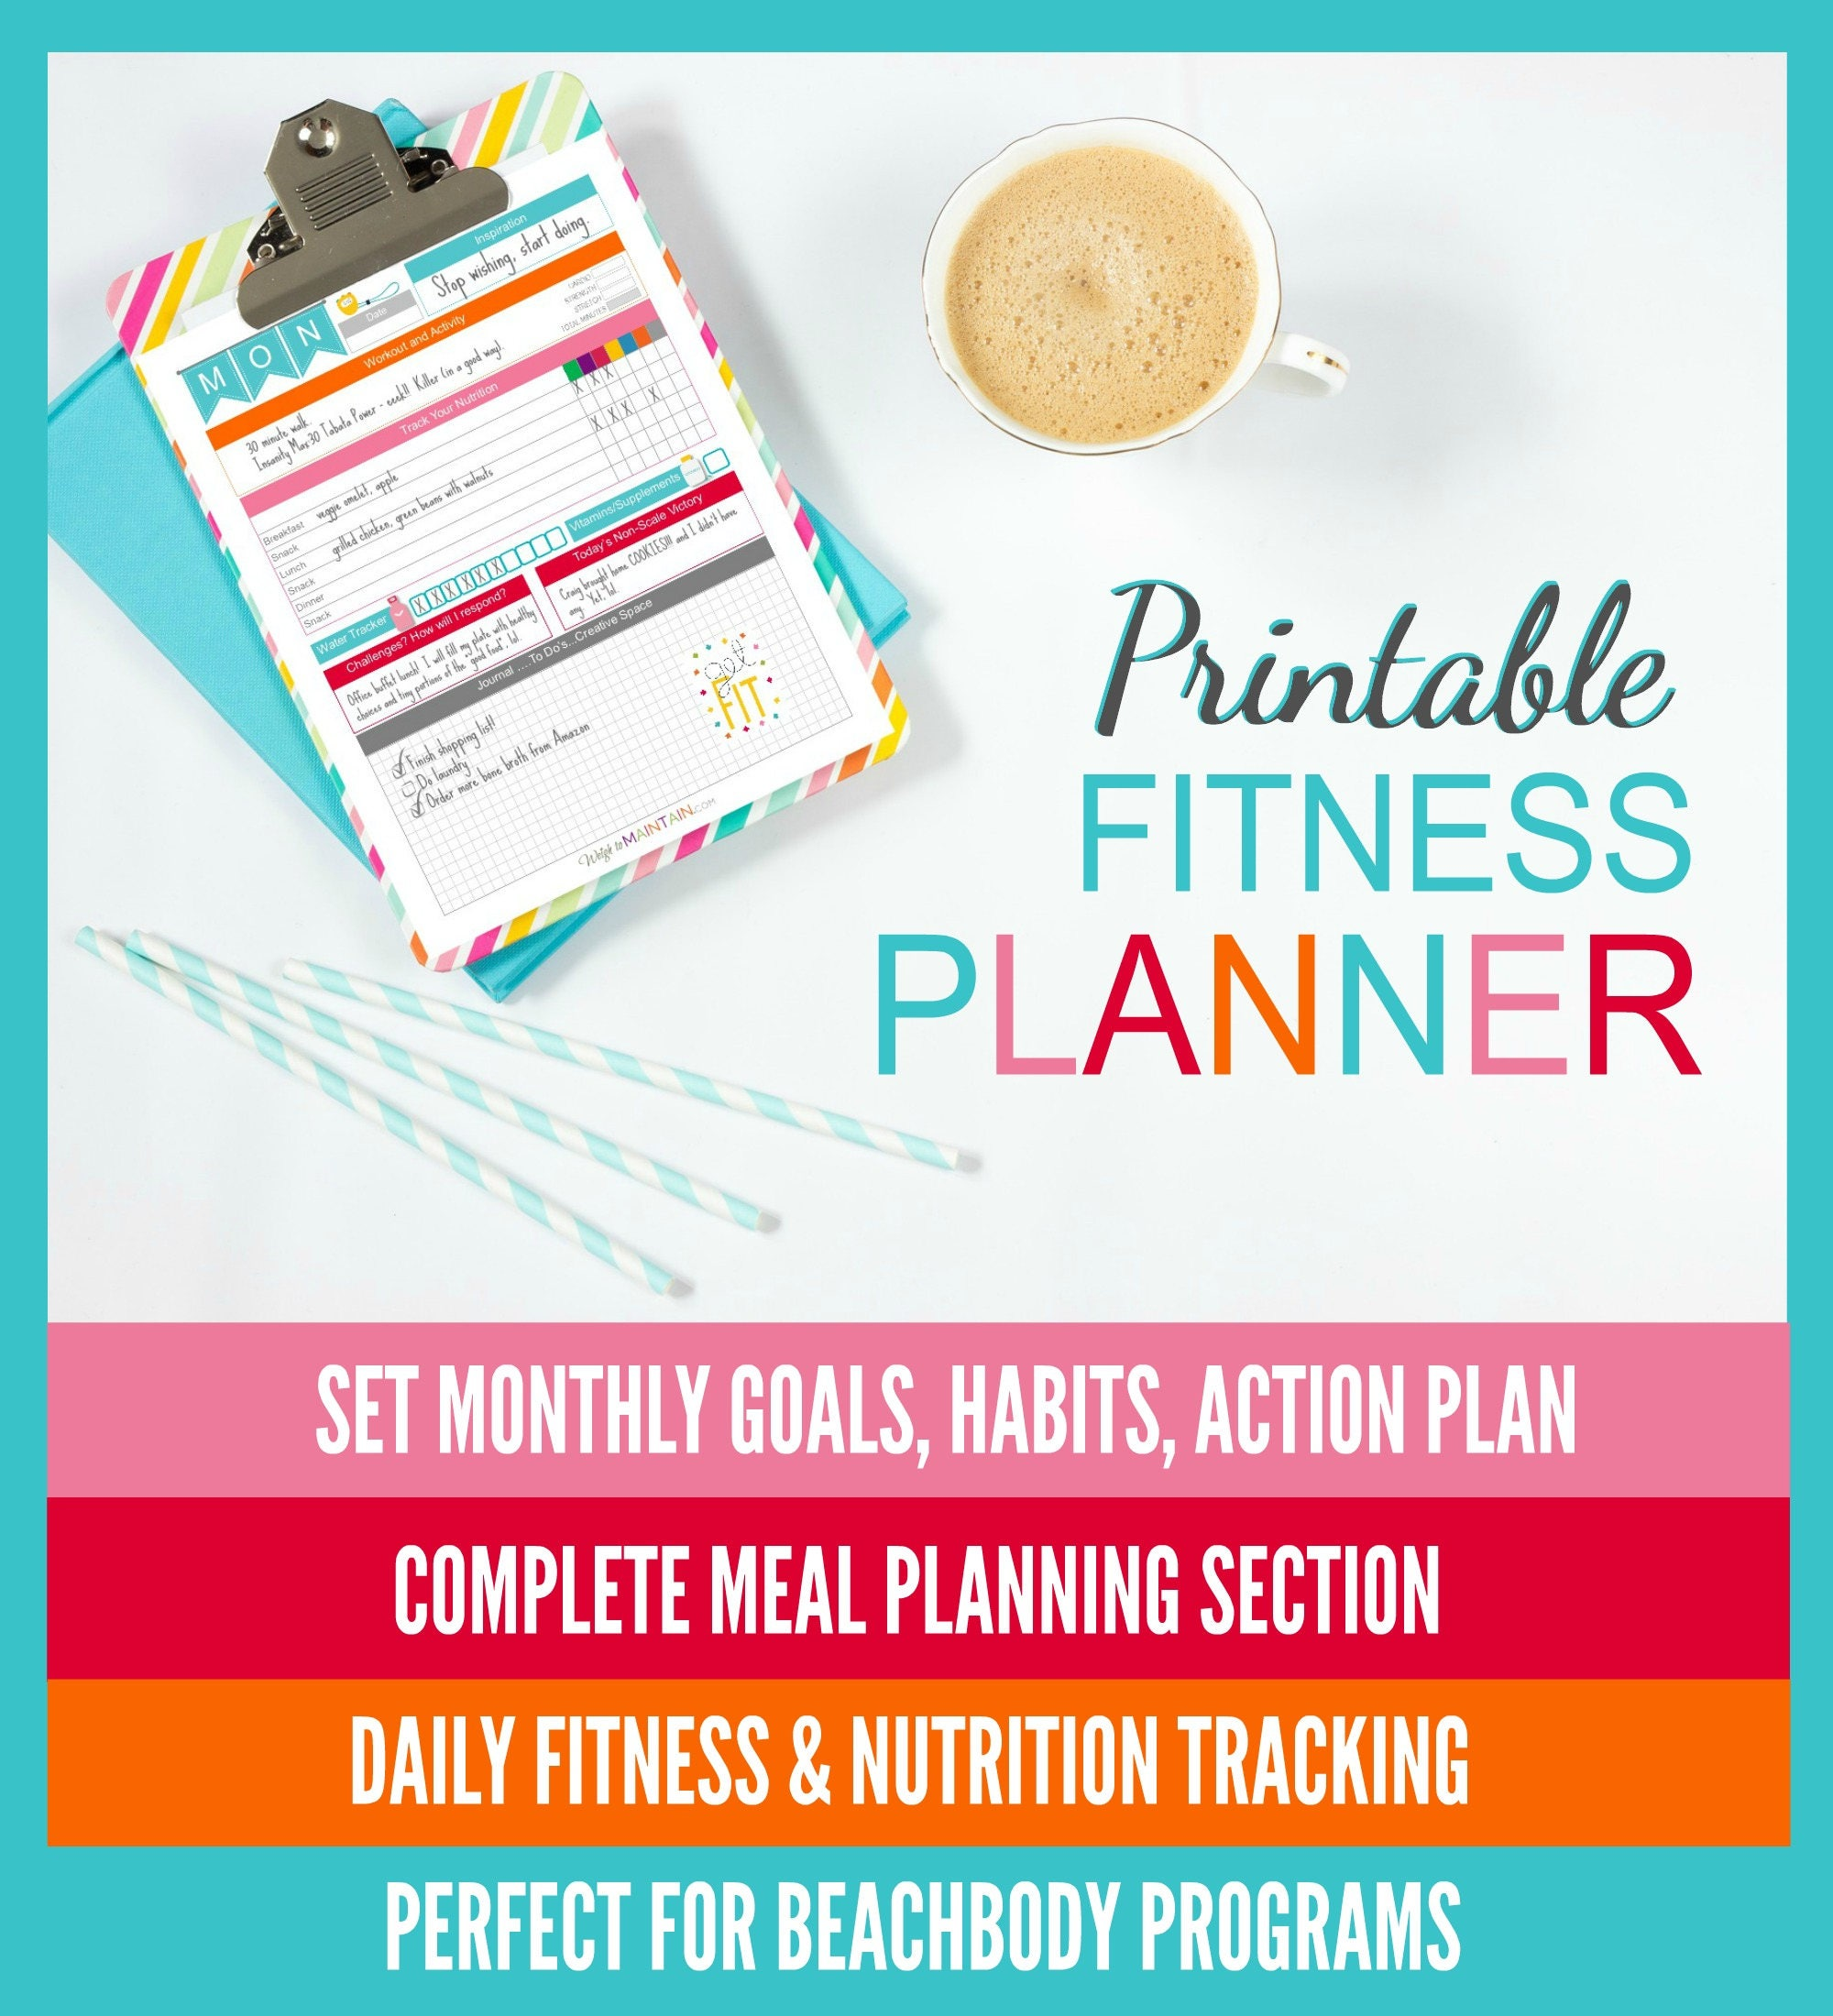 Diet plan for healthy life - Featured Listing Image Printable Diet Fitness Planner Perfect For Beachbody Programs 8 5